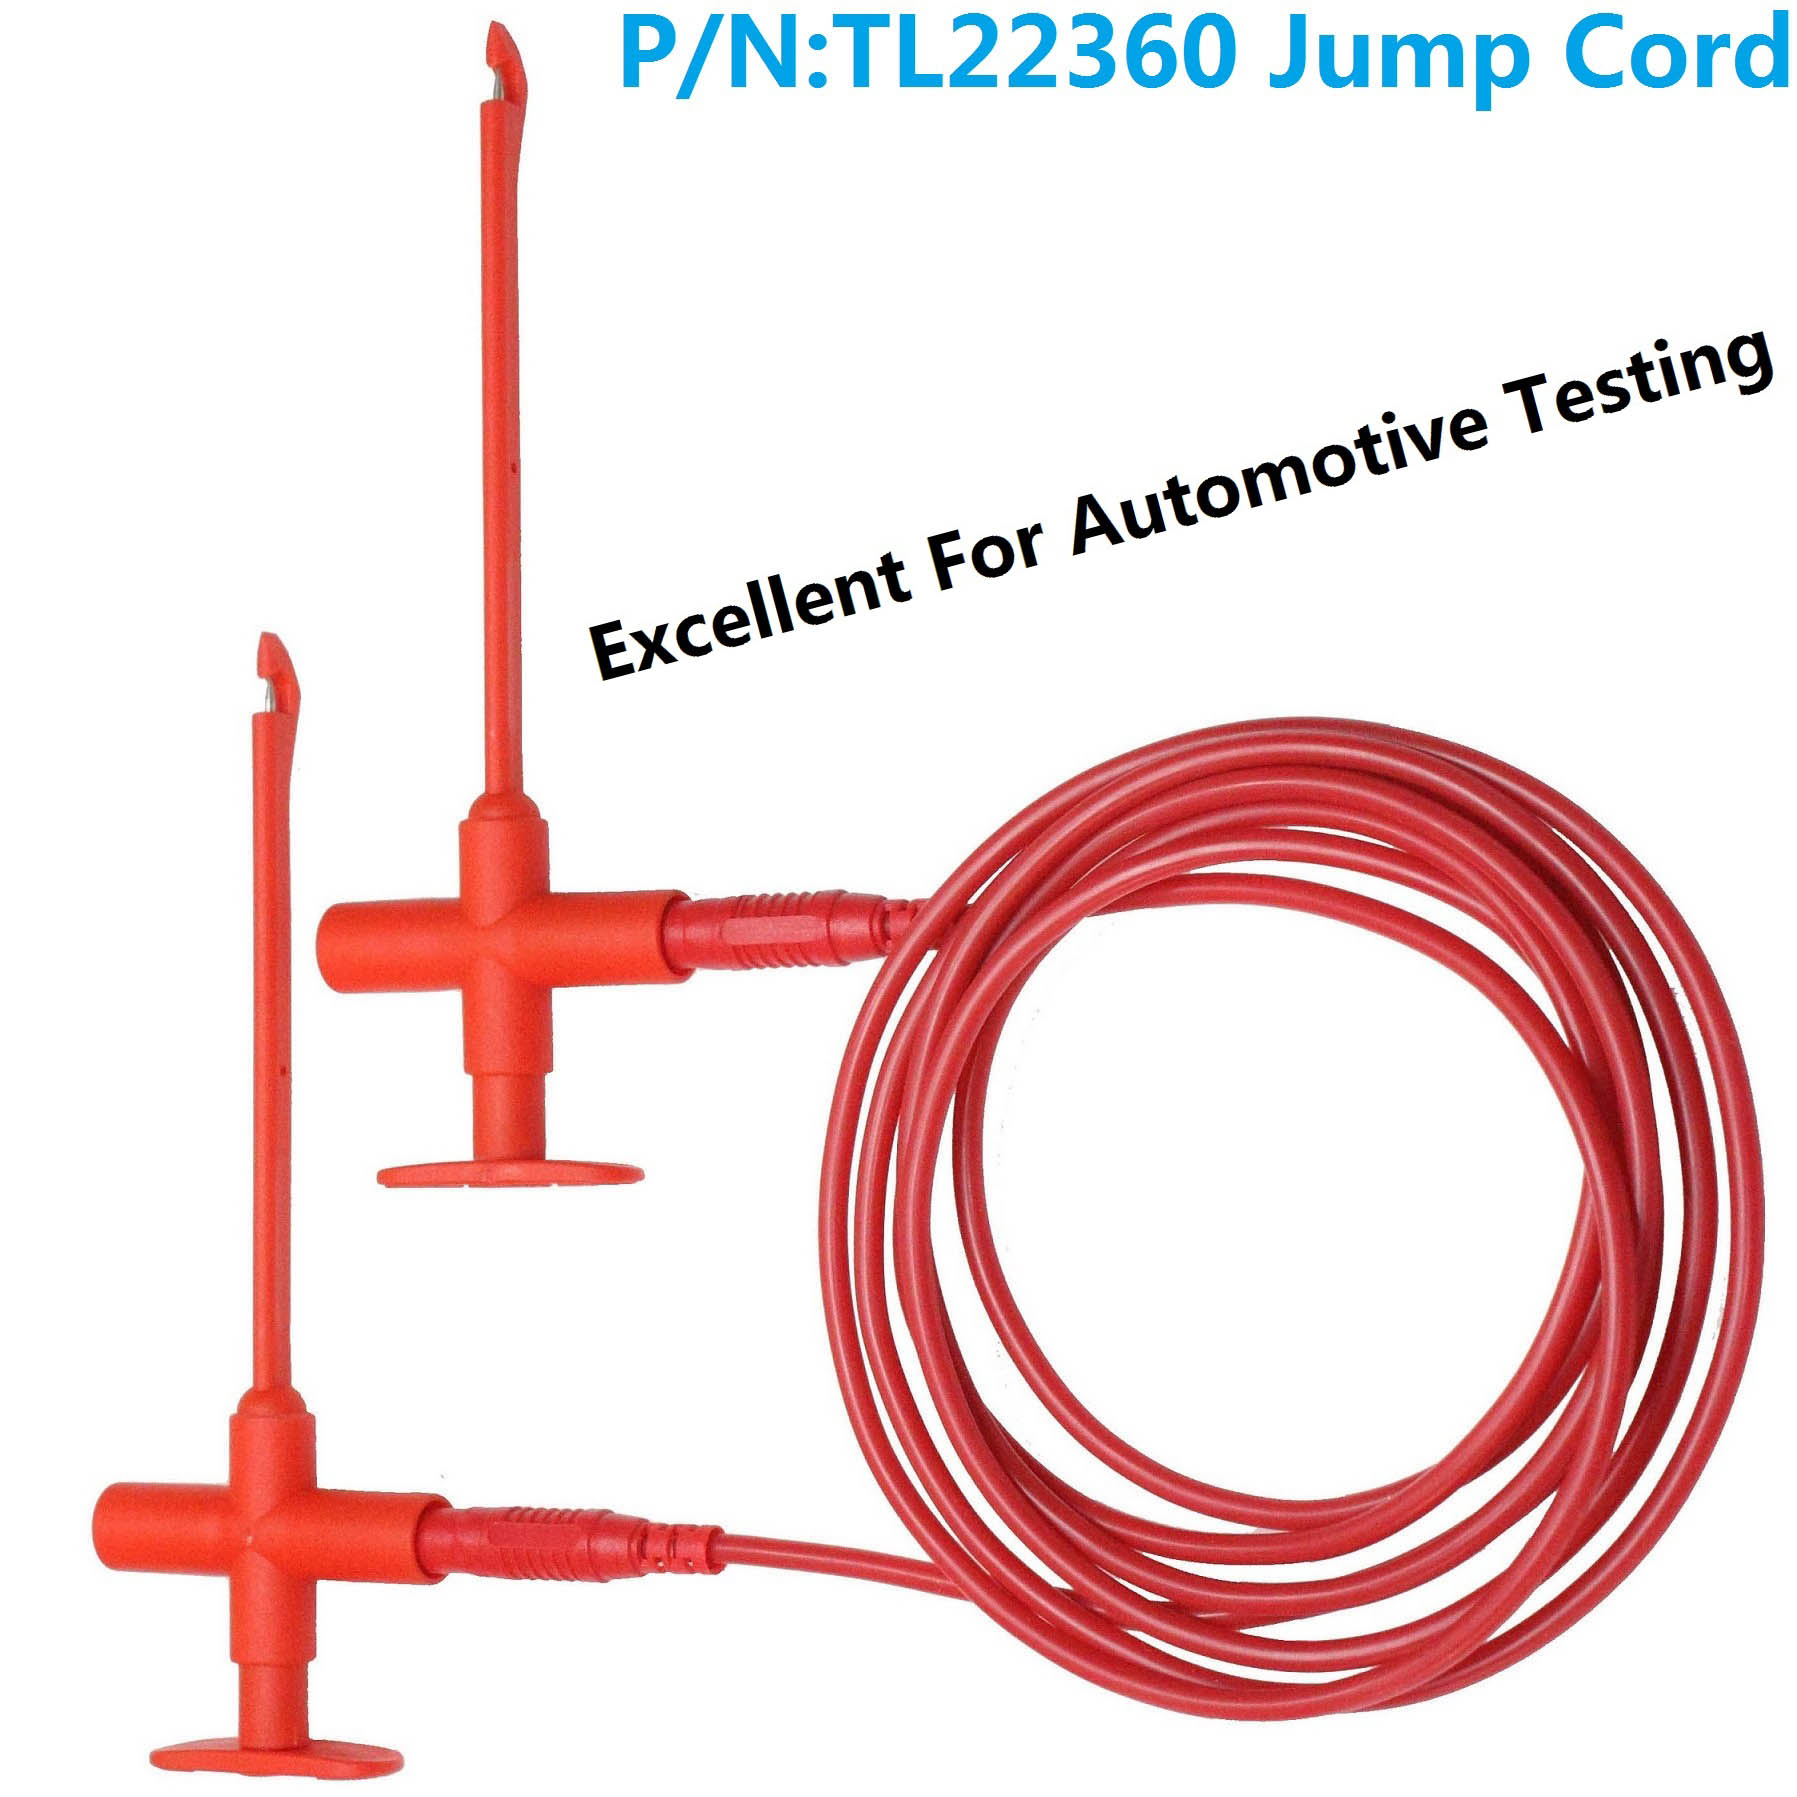 Cable piercing tl22360 jump cord line double slider test line combination piercing corporate veil